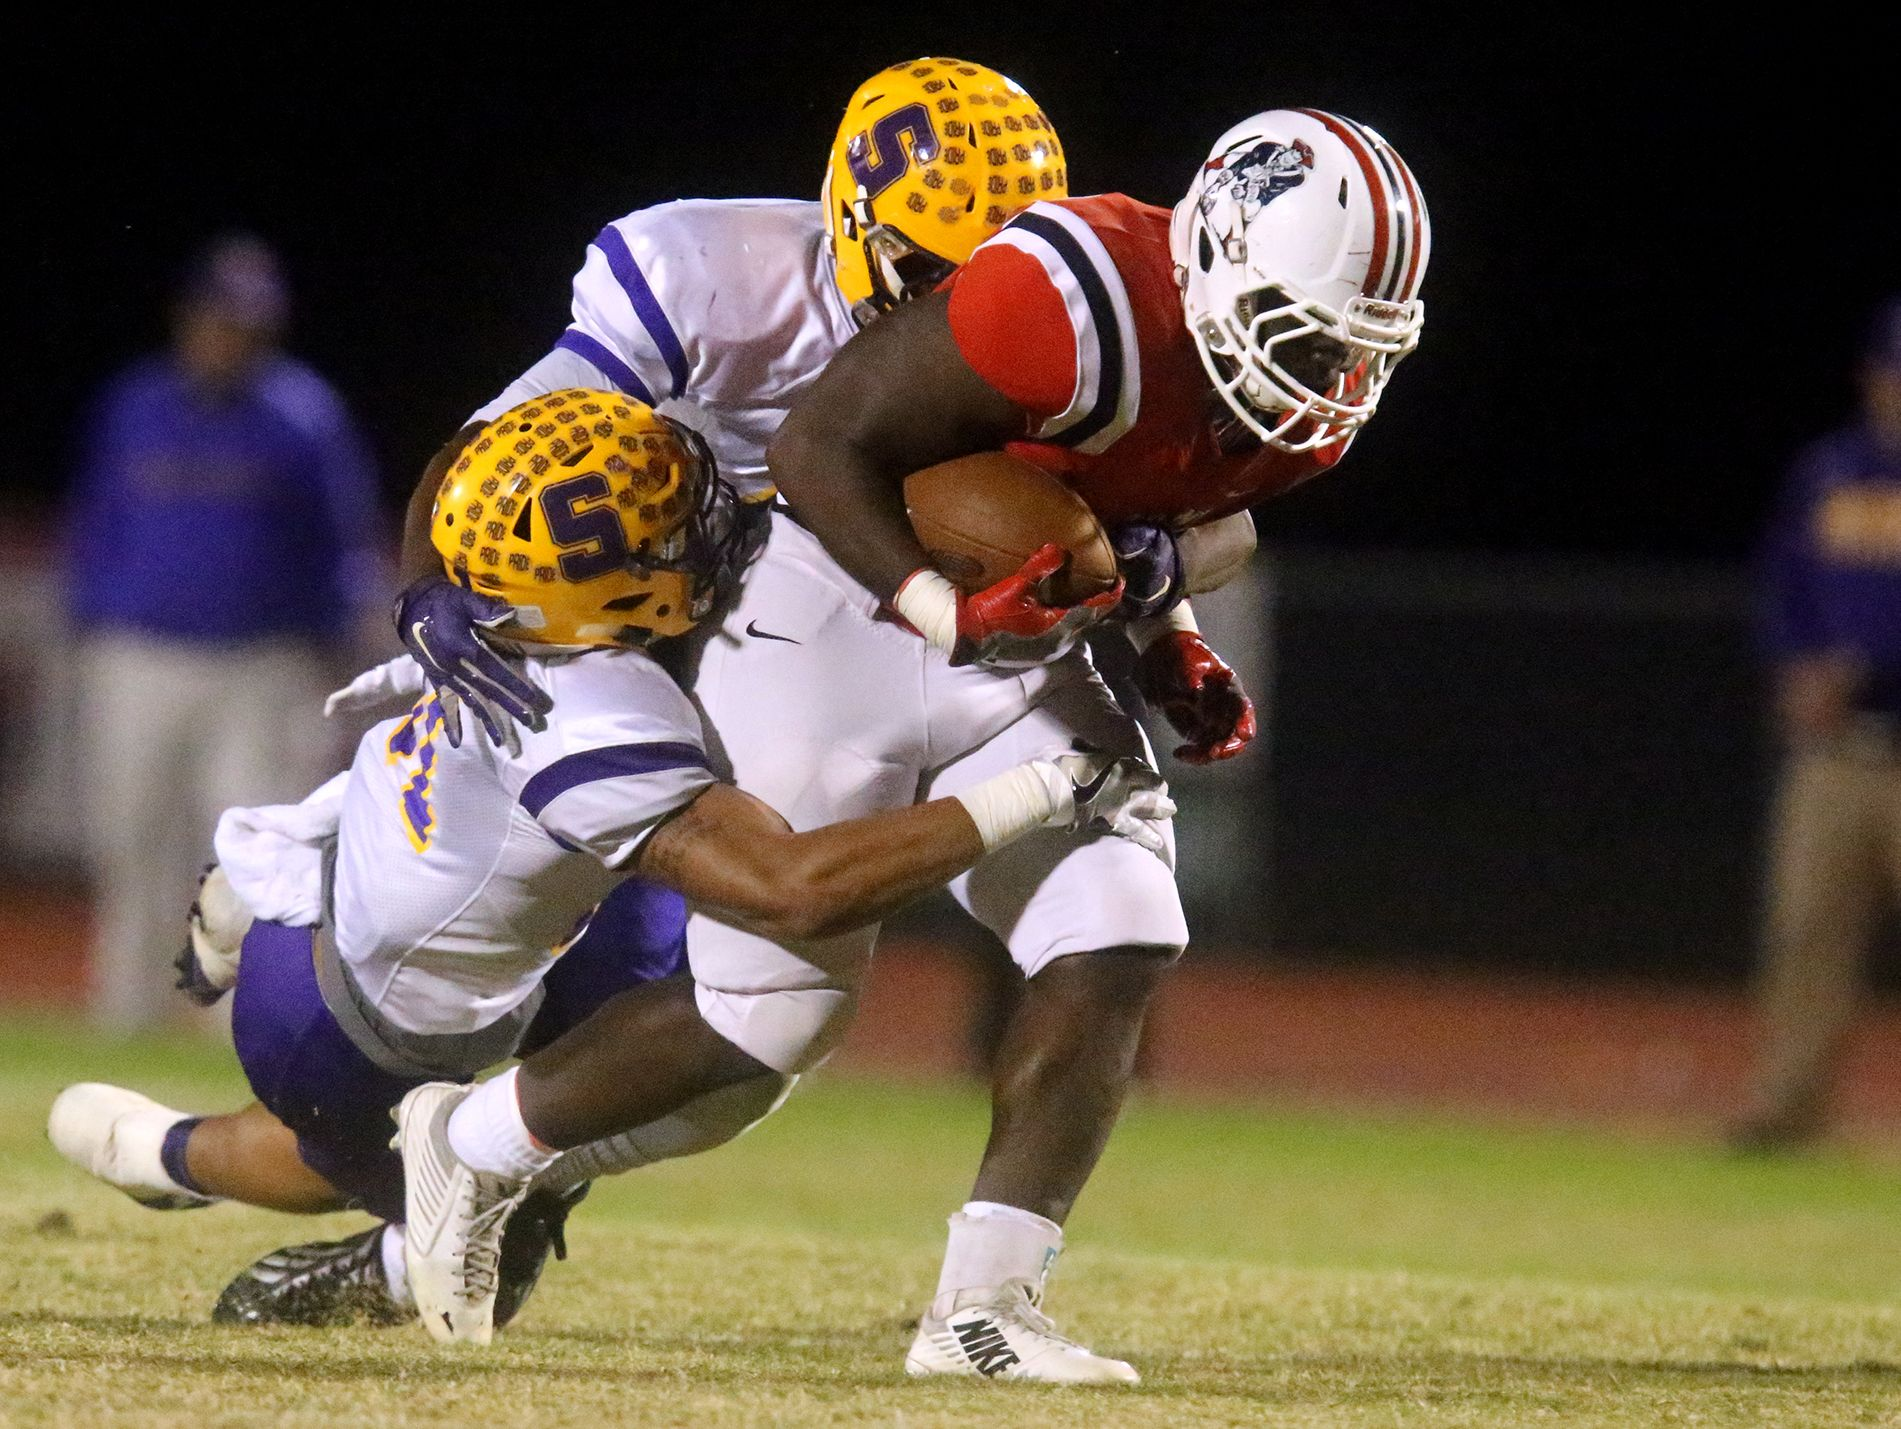 Oakland's Lontavious Wilson (27) runs the ball as Smyrna's Deven Sims (31) and Eric Recasner (41) try to bring Wilson down, on Friday, Oct. 28, 2016, at Oakland.